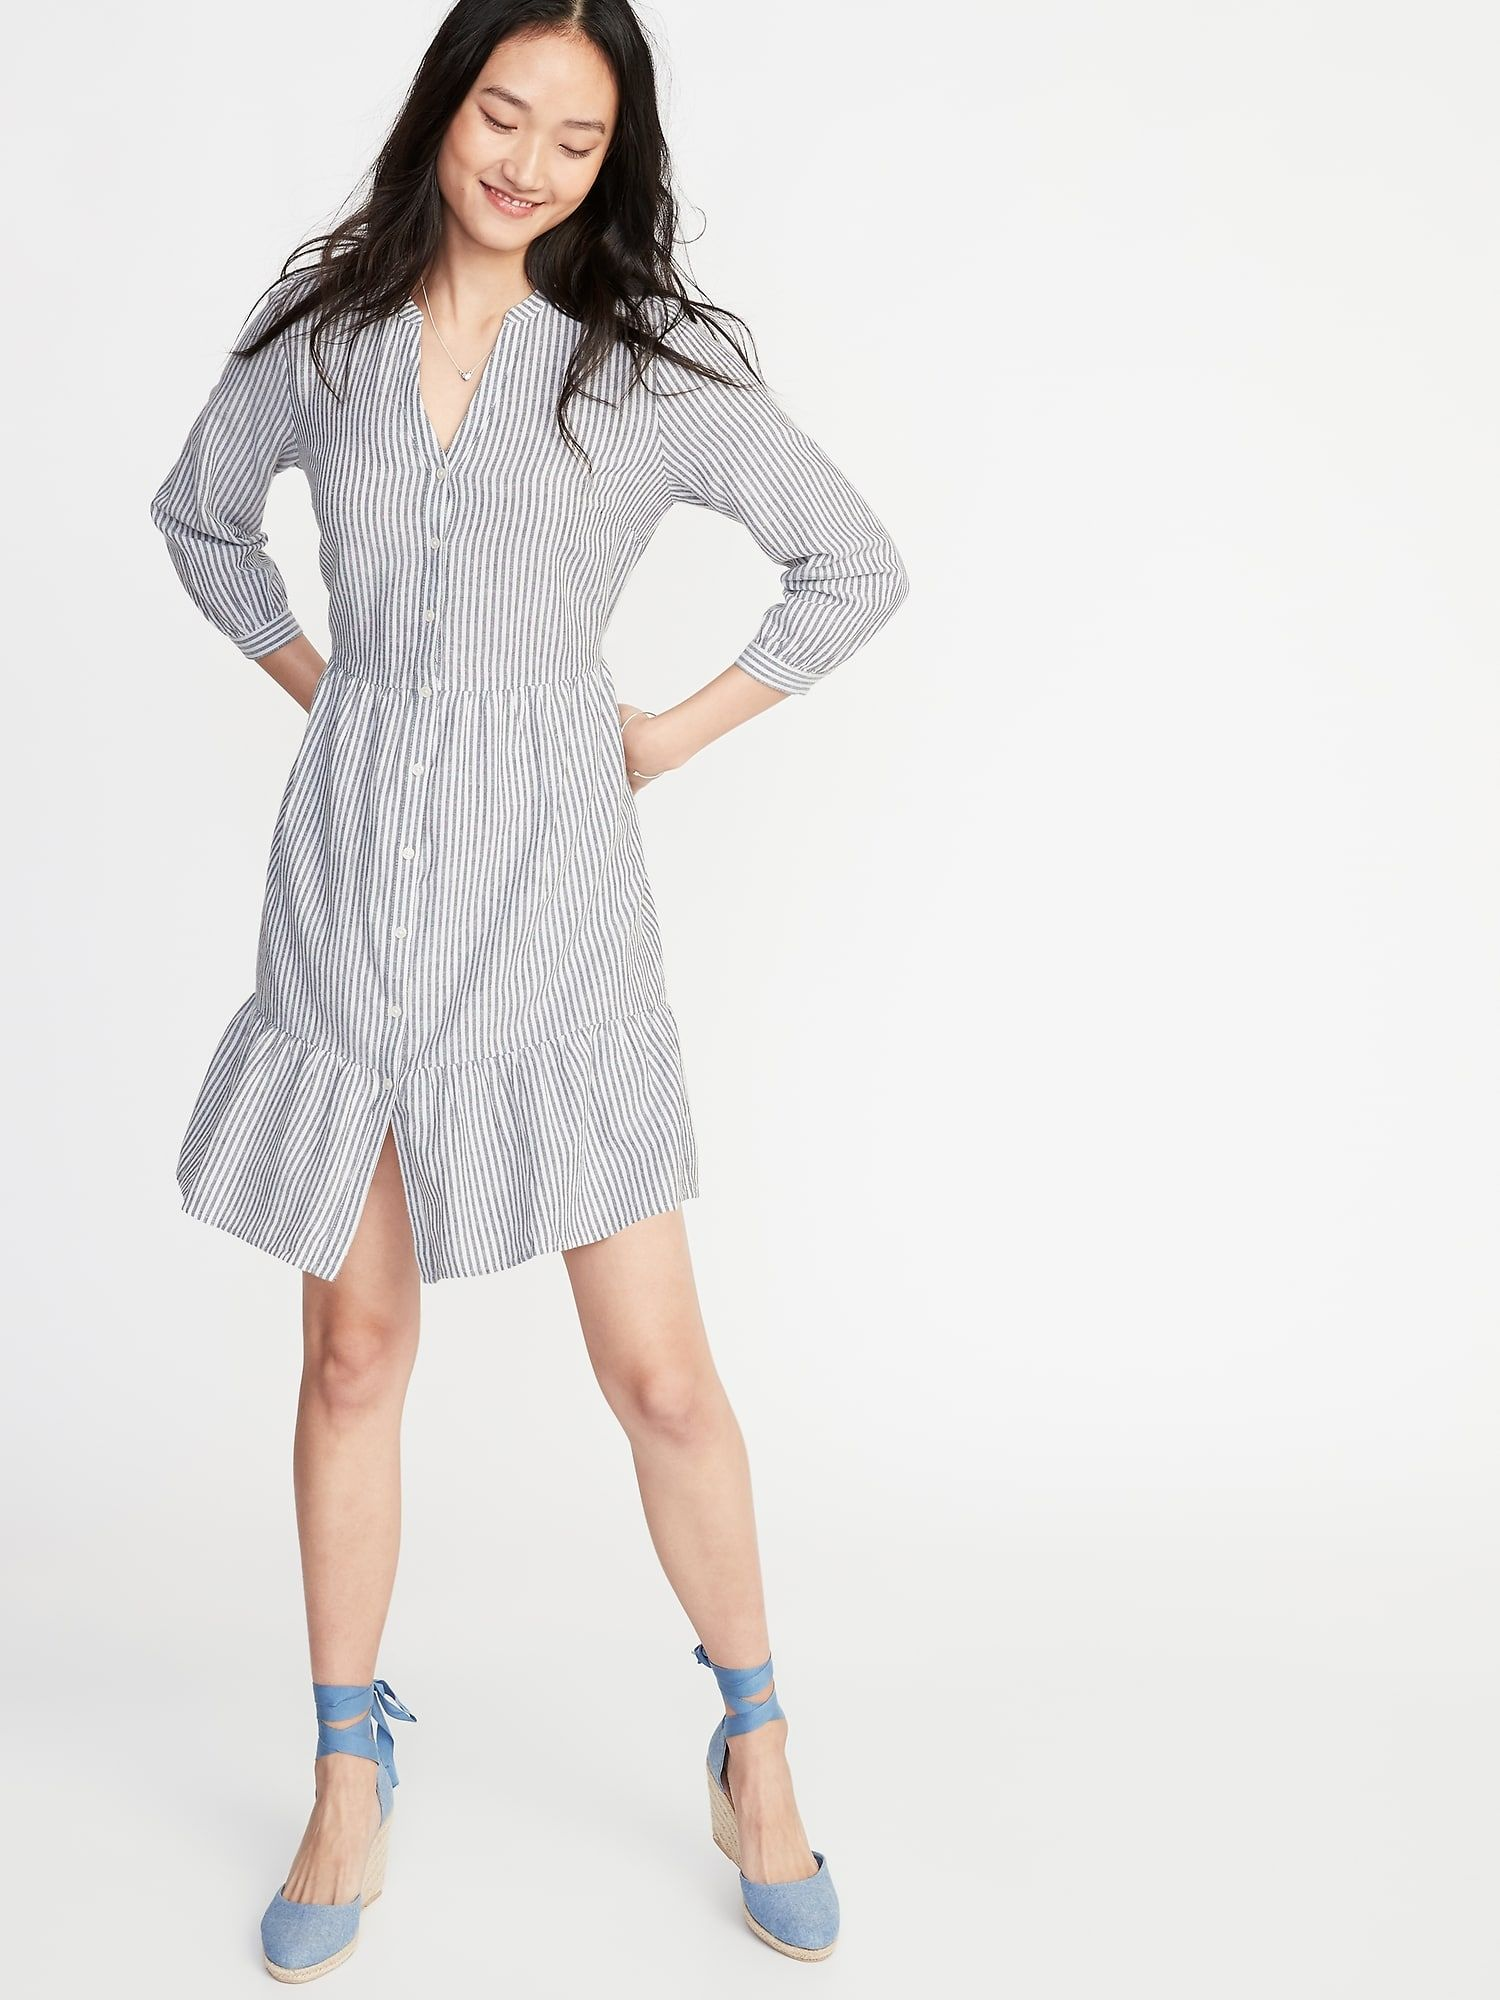 Steady Old Navy Waist Defined Sleeveless Blue Romper Small Rayon Shorts Small A Great Variety Of Models Clothing, Shoes & Accessories